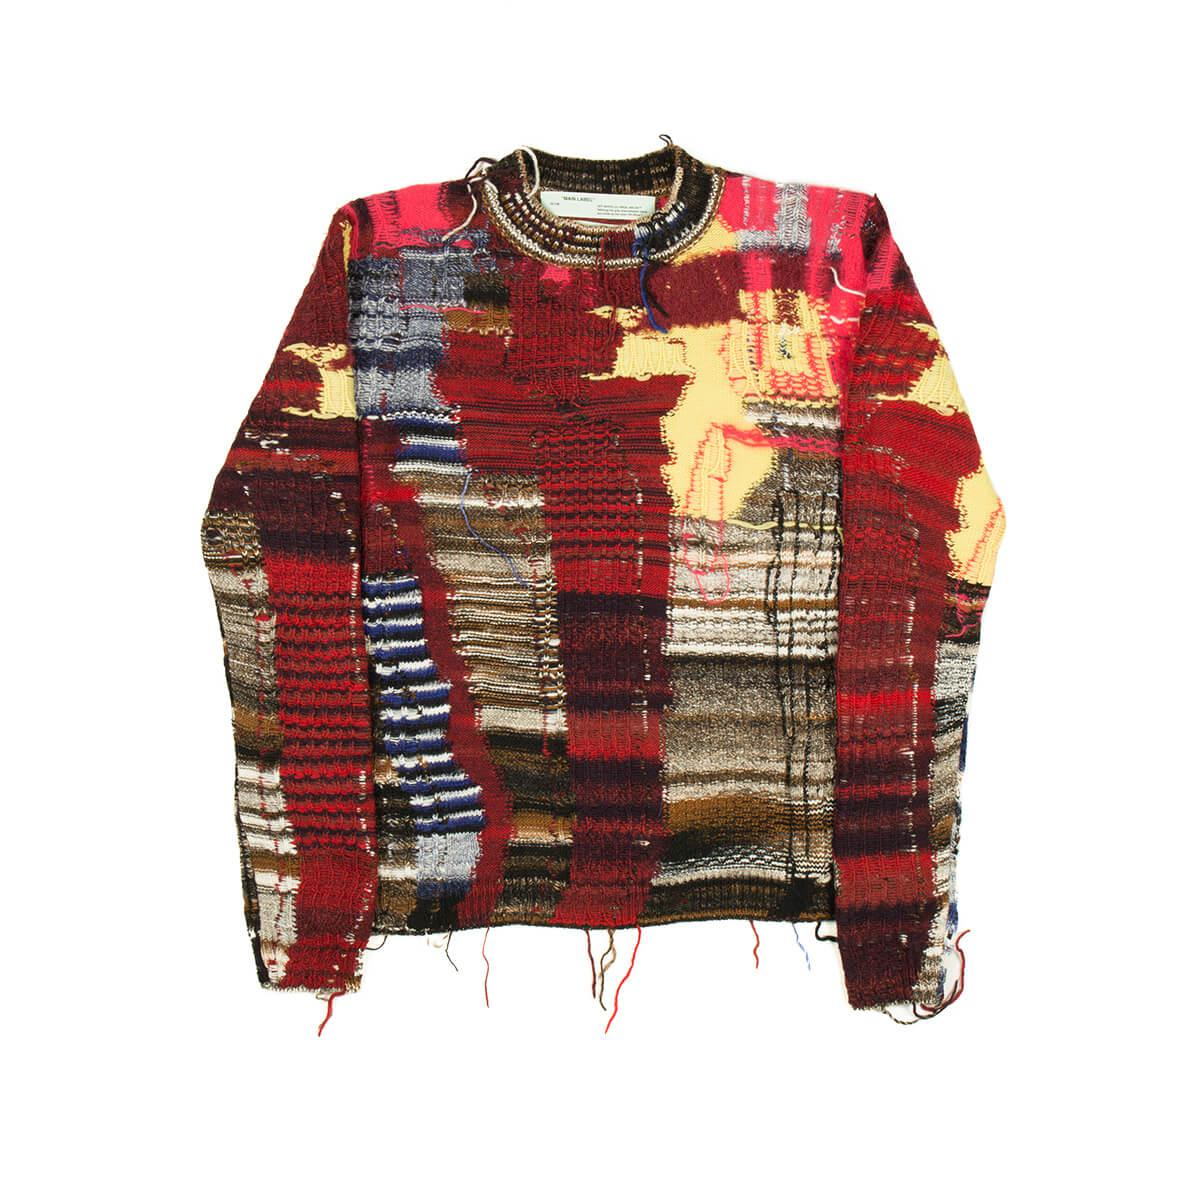 9dd8a3148a Lyst - Off-White C O Virgil Abloh Business Casual Knitwear in Red ...